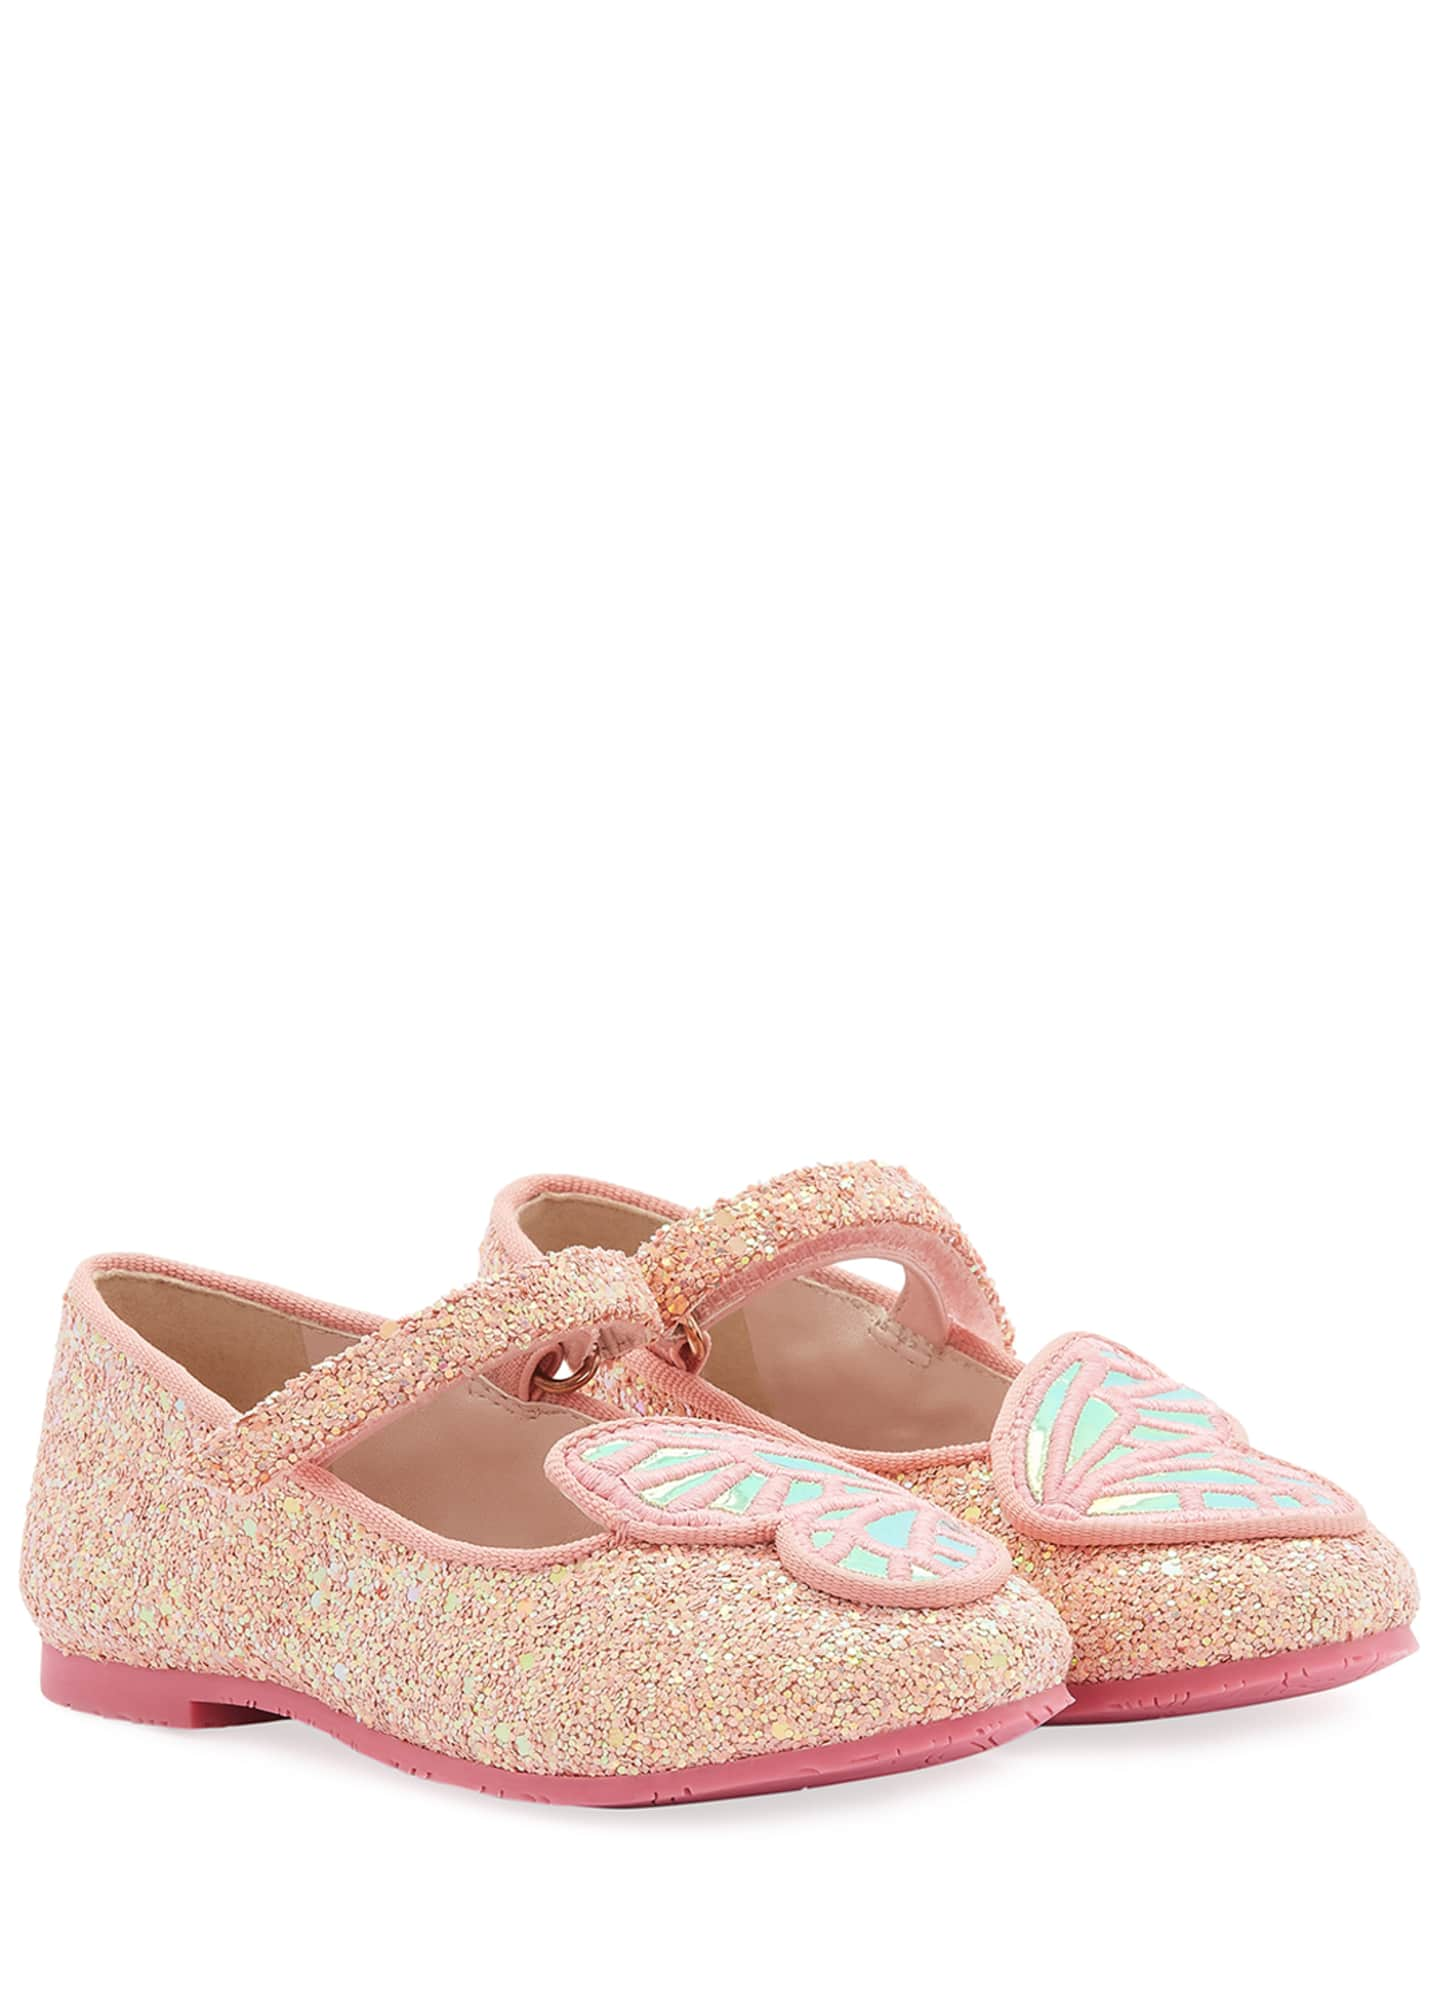 Sophia Webster Butterfly Embroidered Chunky Glitter Flats,